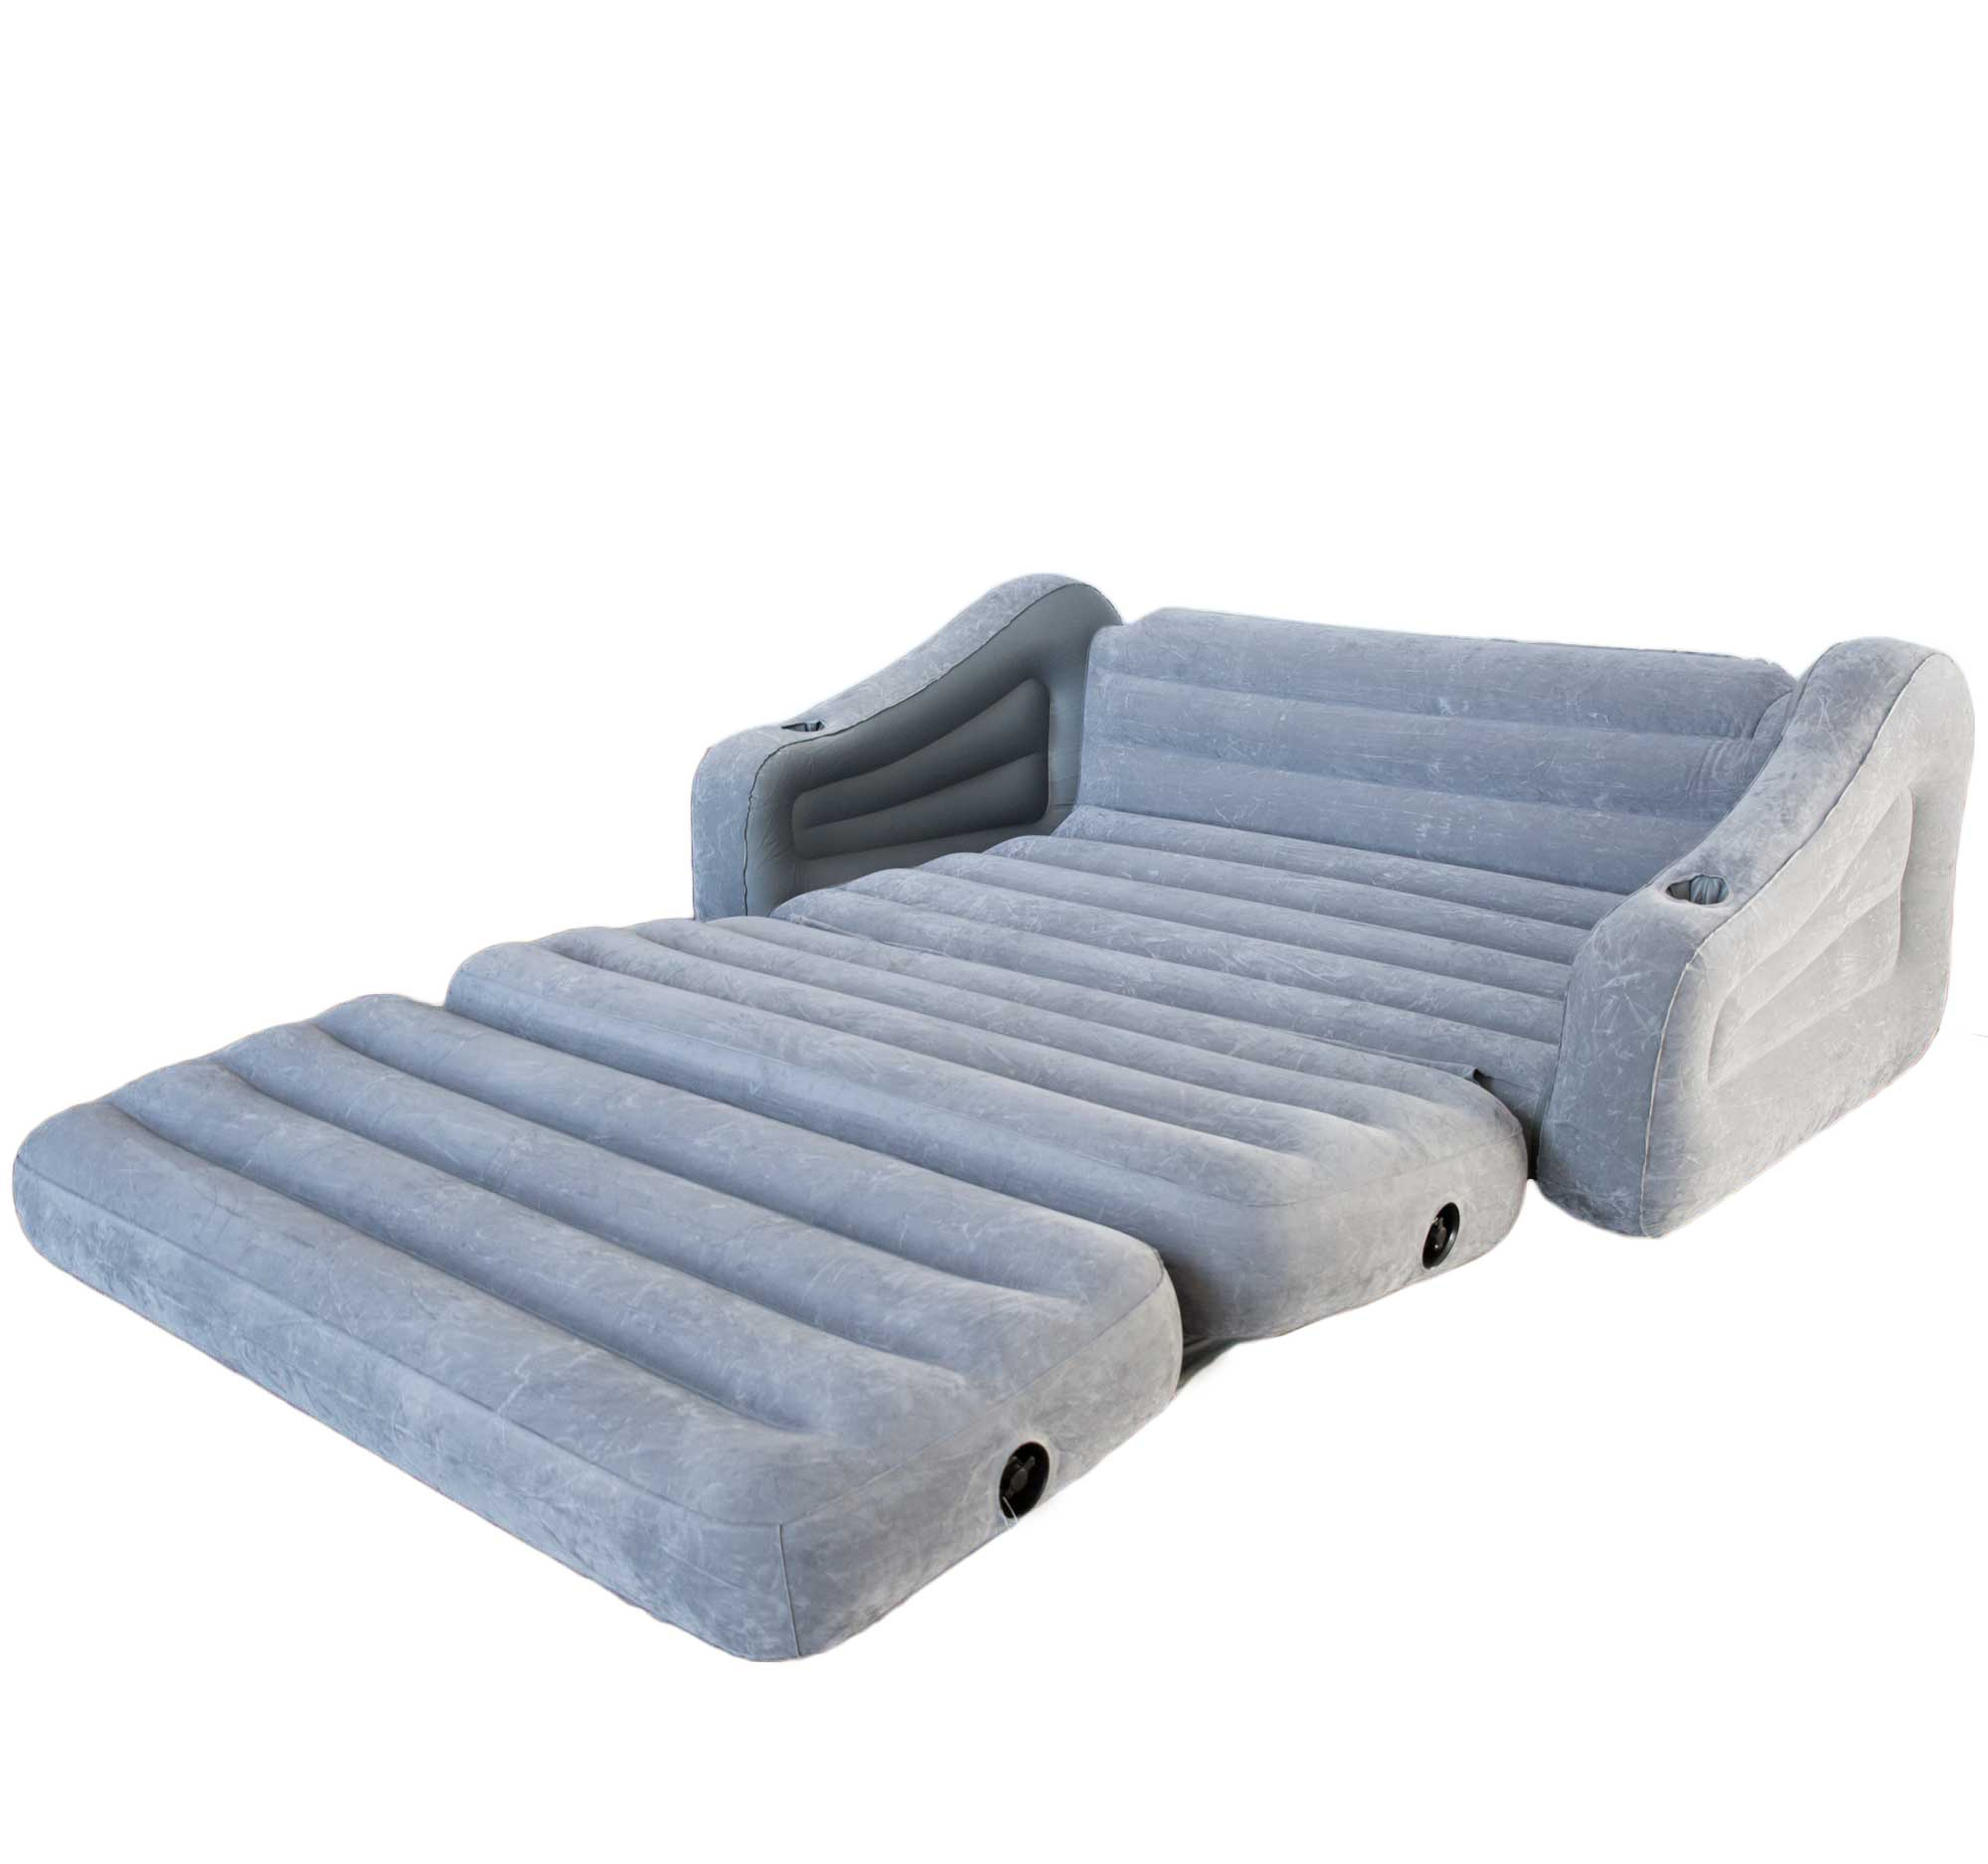 Intex inflatable 2 in 1 pull out sofa and queen air for Sofa bed air mattress